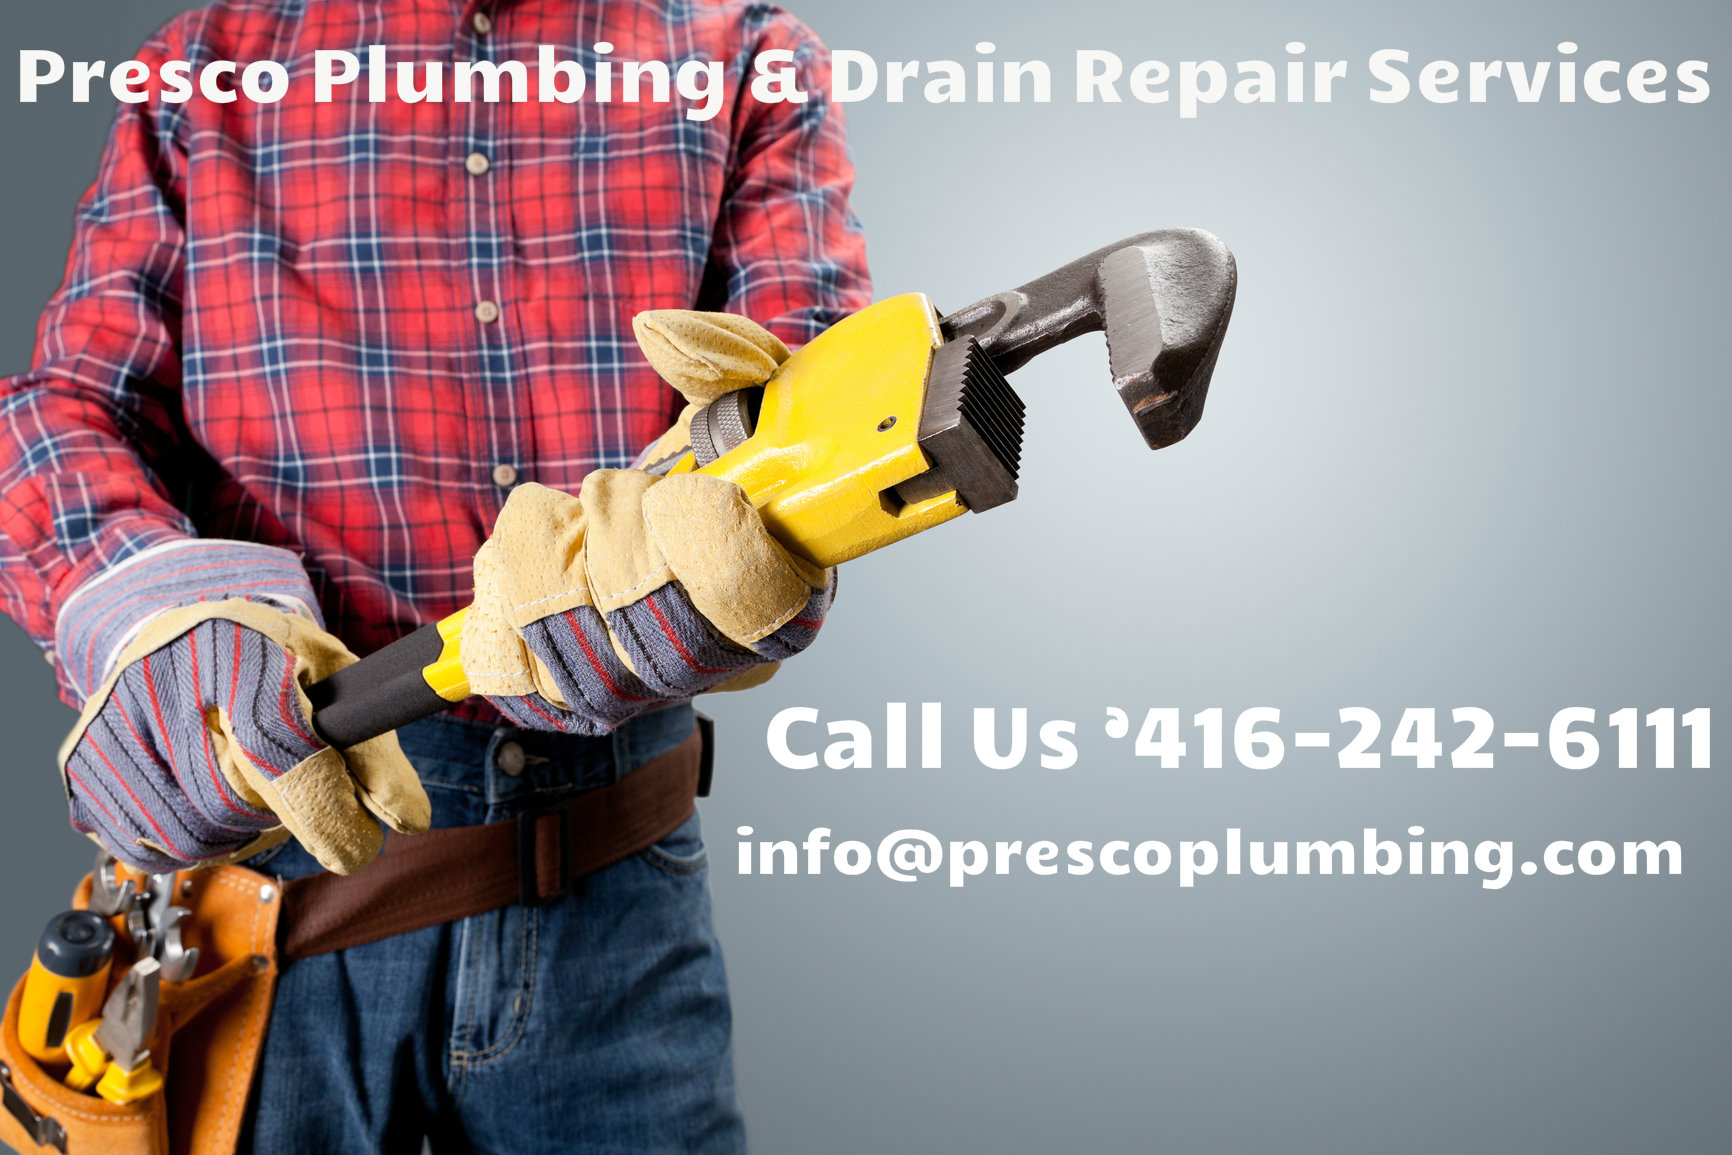 Presco Plumbing & Drain fourth image